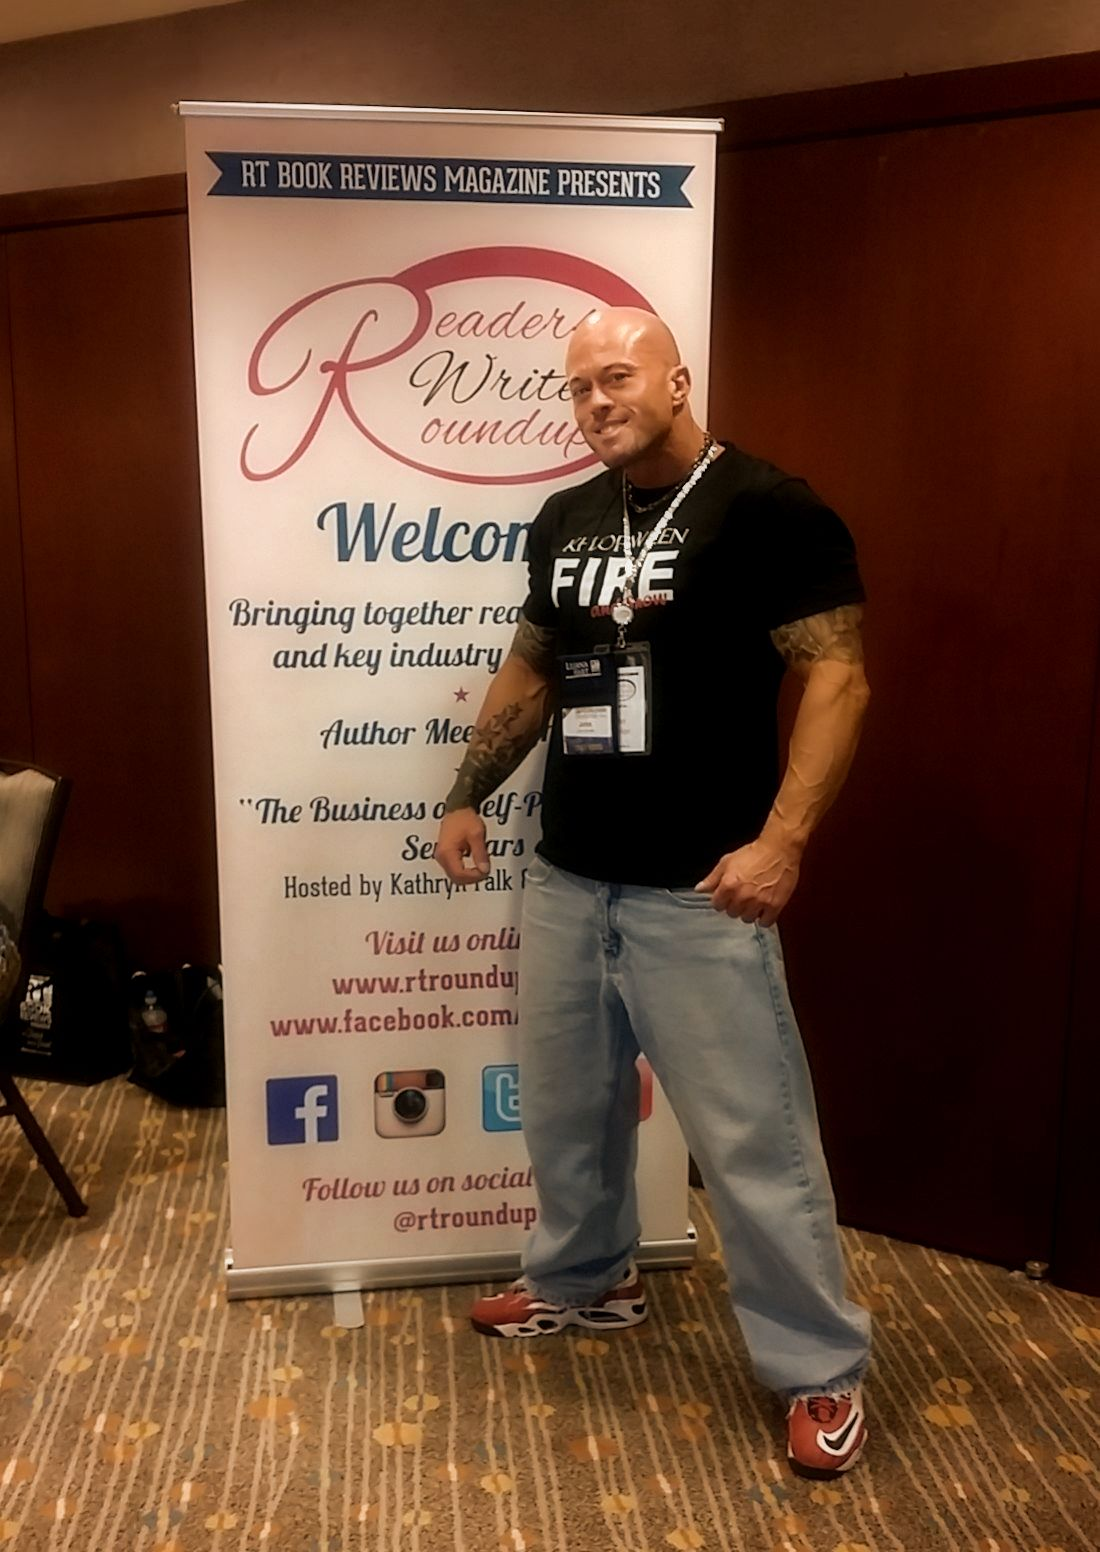 John Quinlan 2015 RT Convention Readers & Writers Roundup Featured Cover Model. #JohnQuinlan